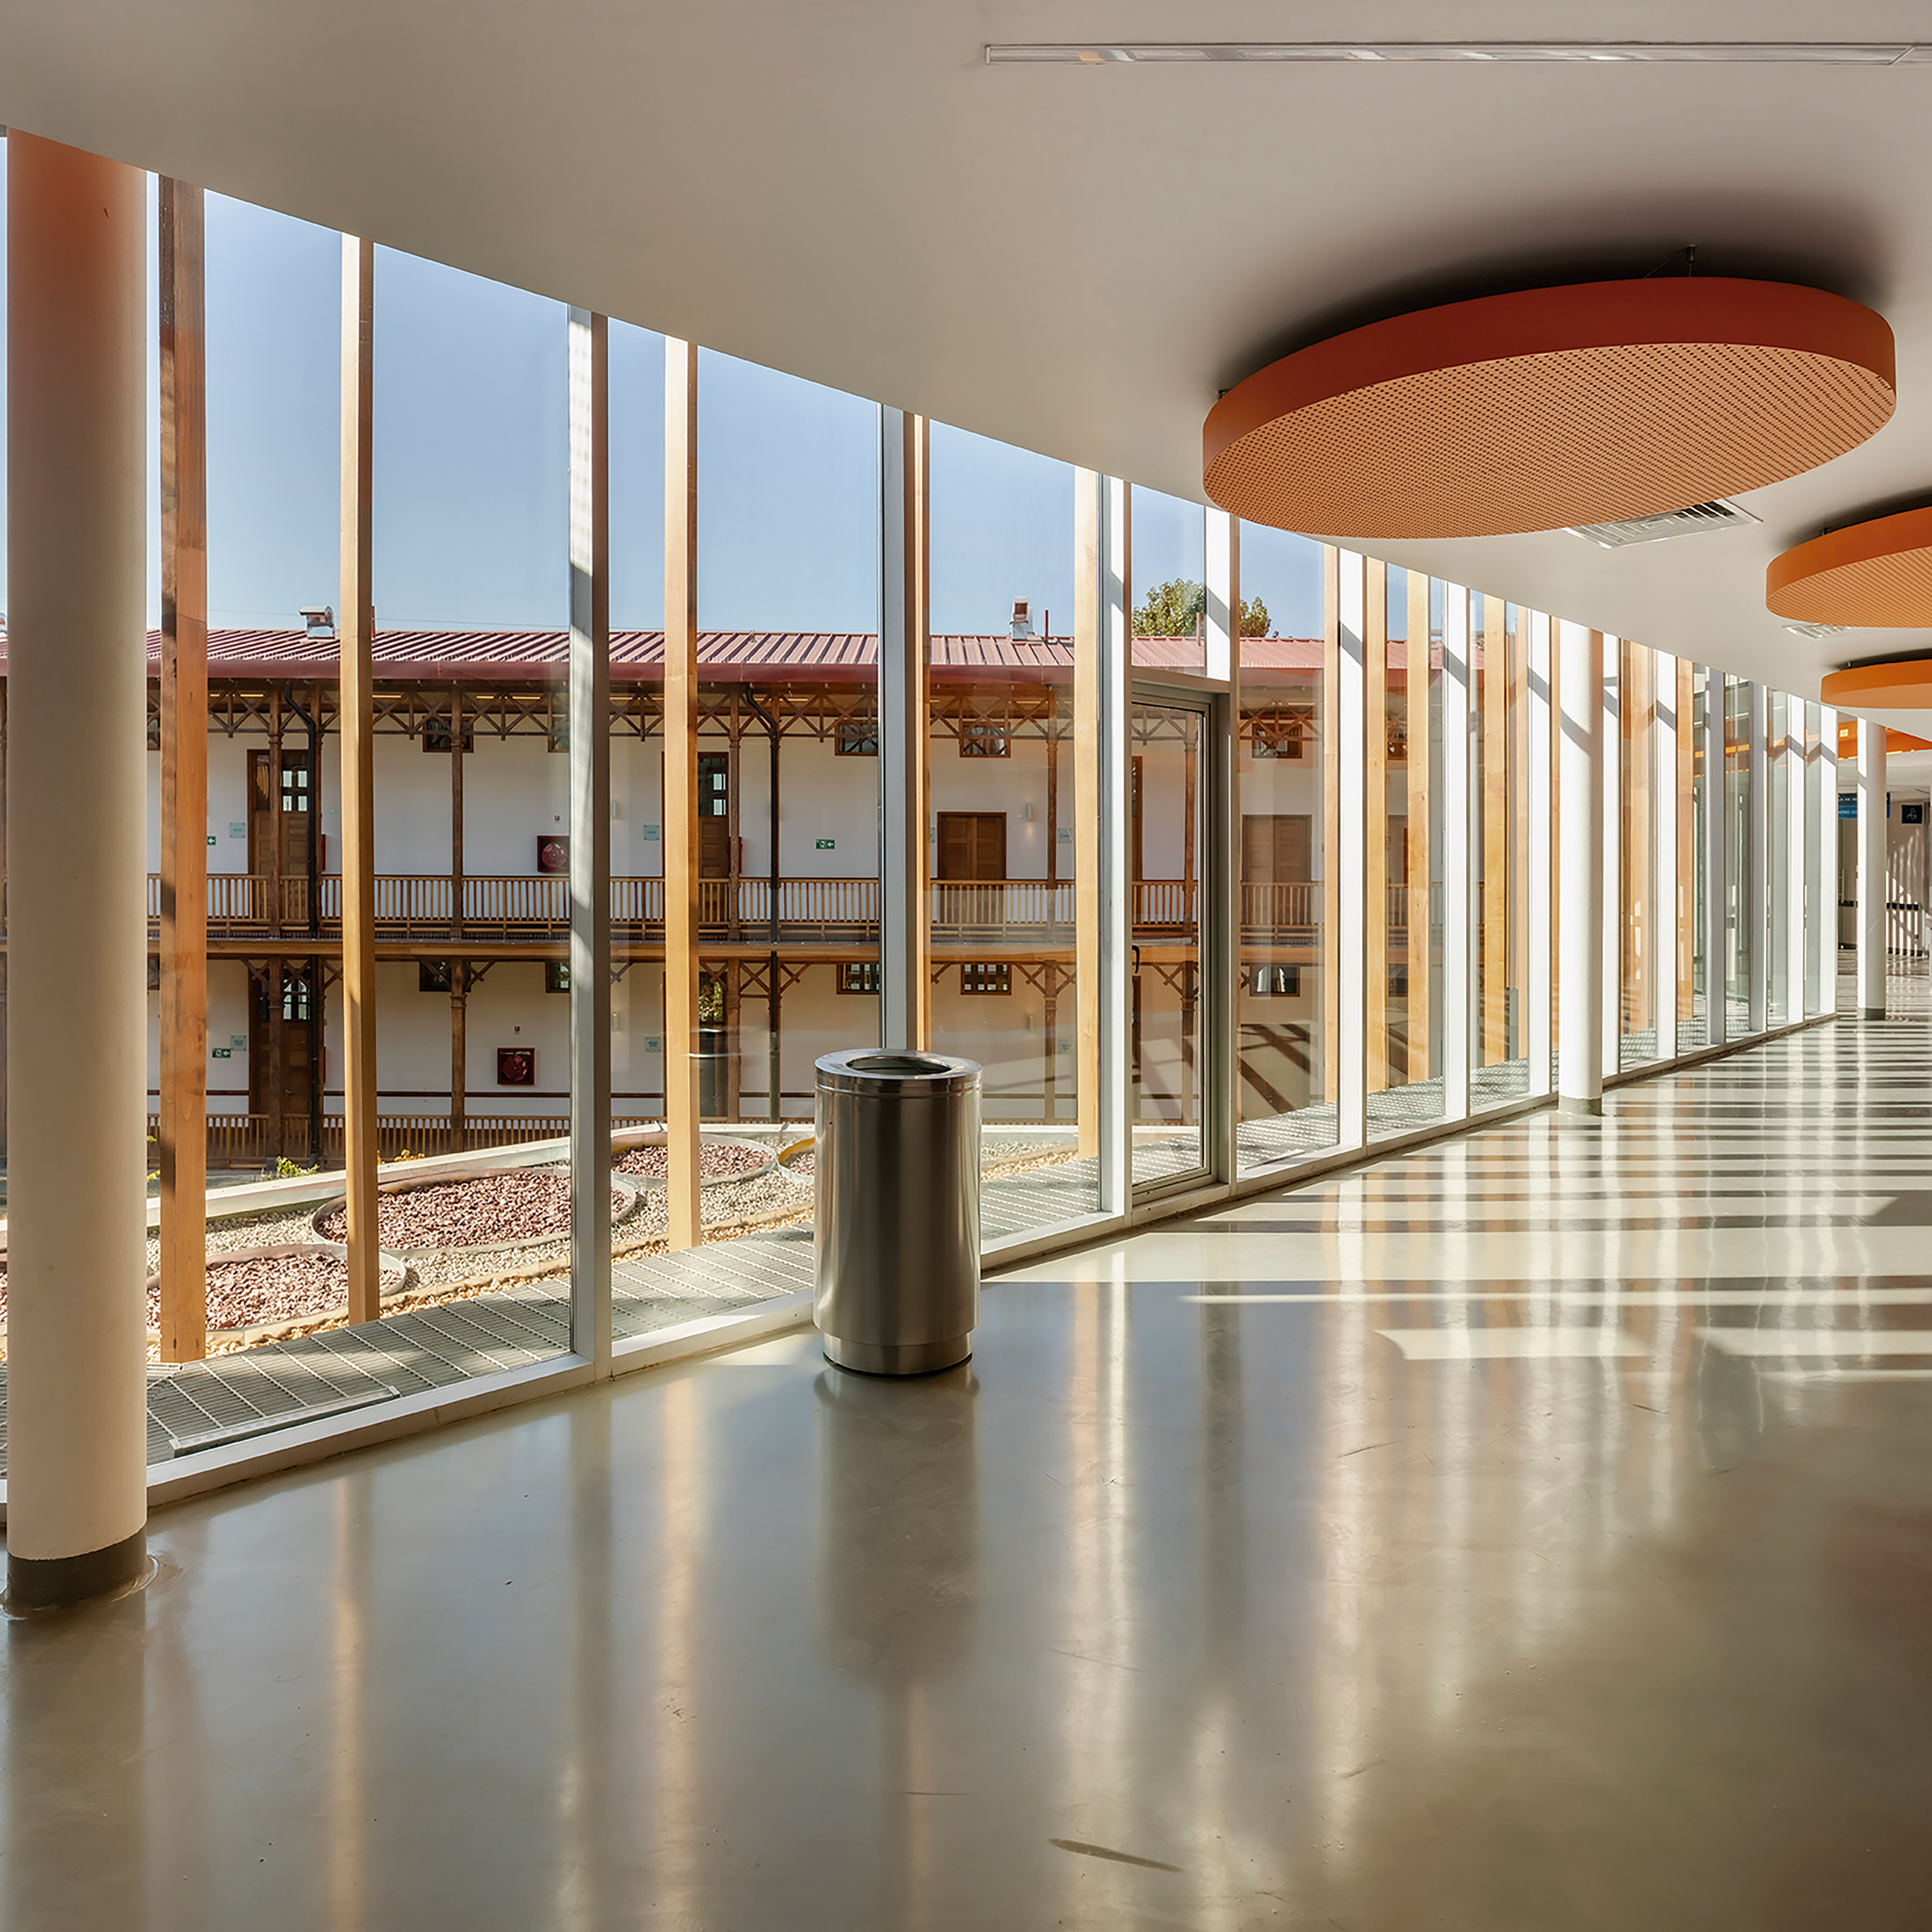 Luis Vidal + Architect designed the project in Chile